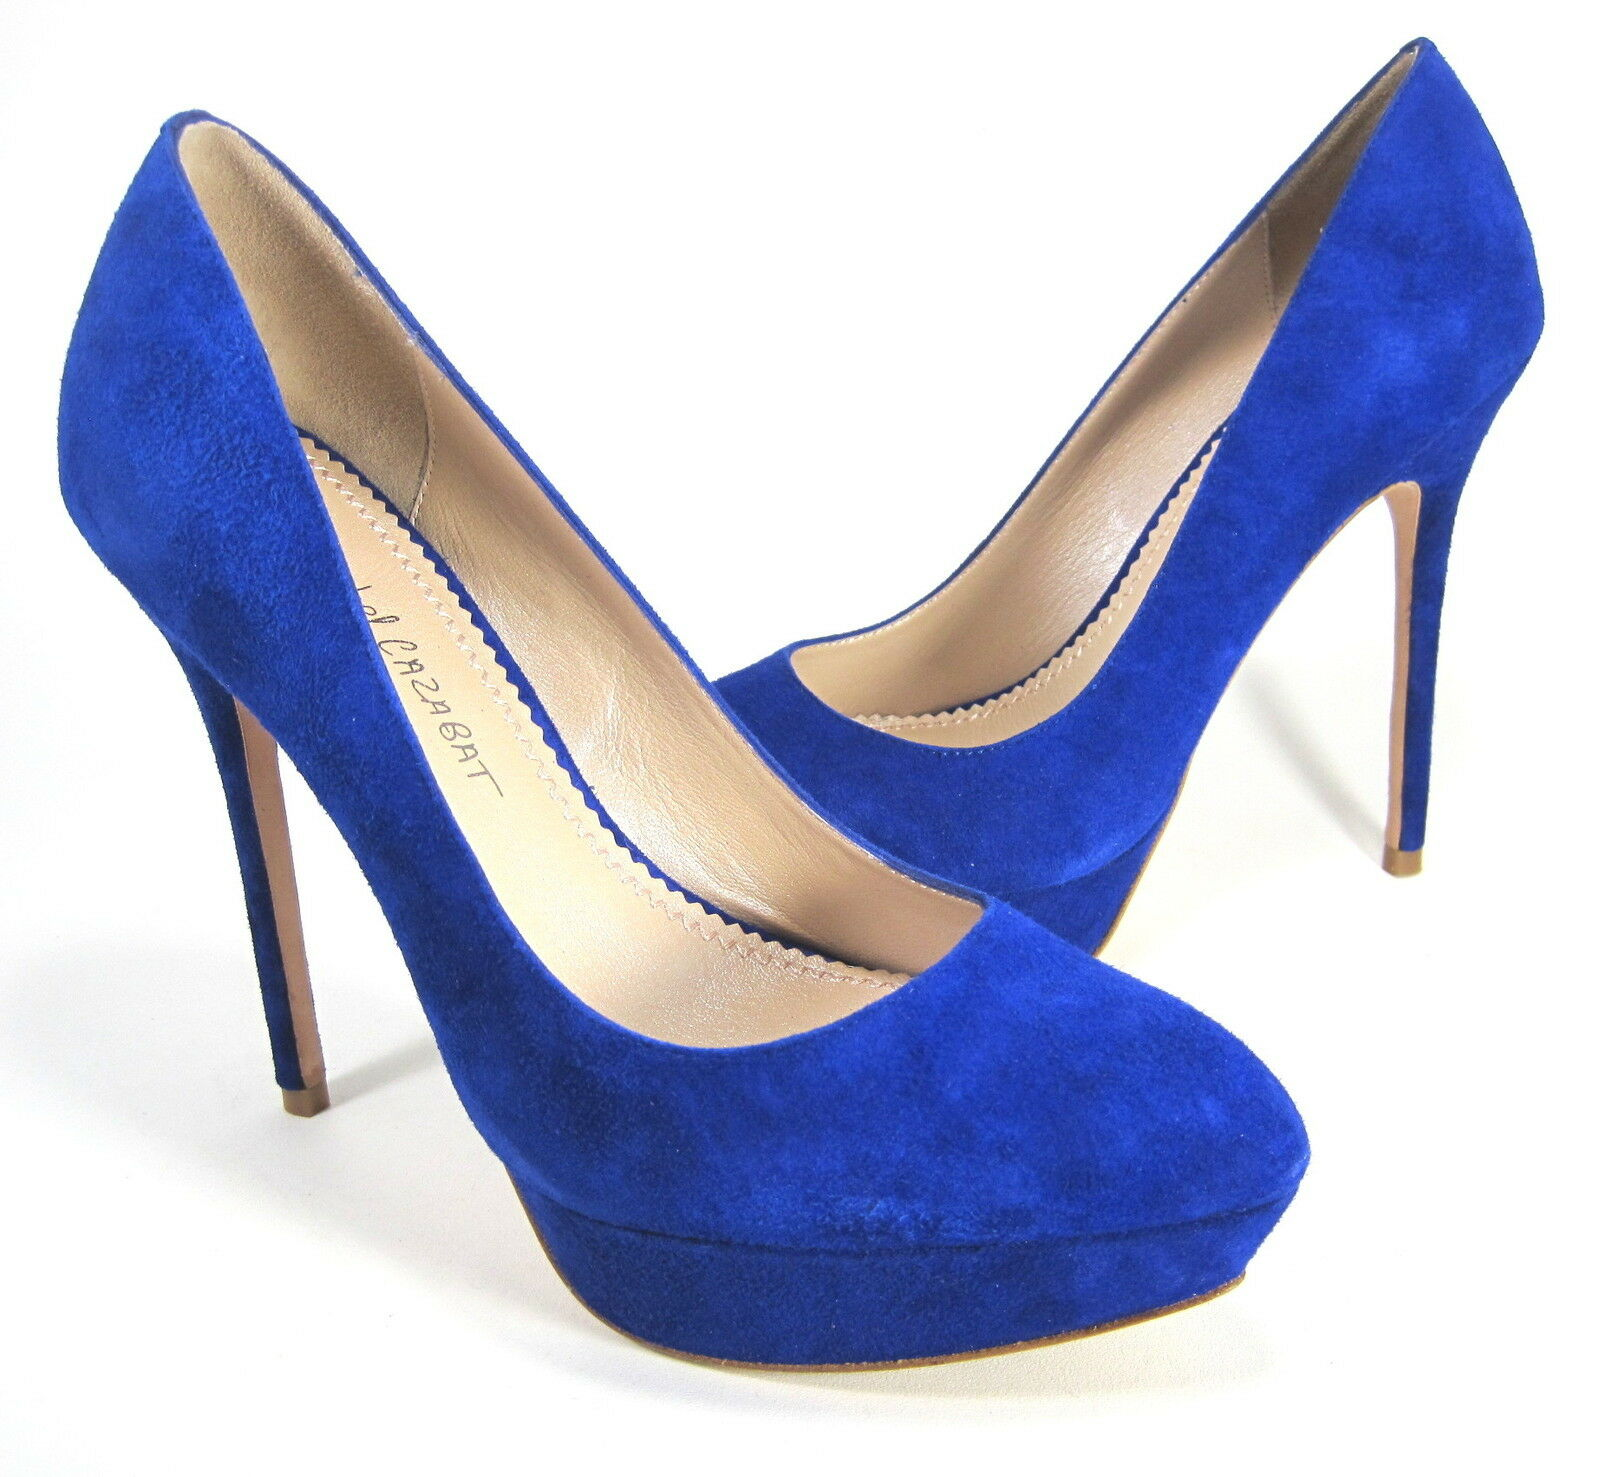 JEAN-MICHEL CAZABAT WOMEN'S LENNOX PUMP COBALT LEATHER EUR 39 US SZ 9 MEDIUM